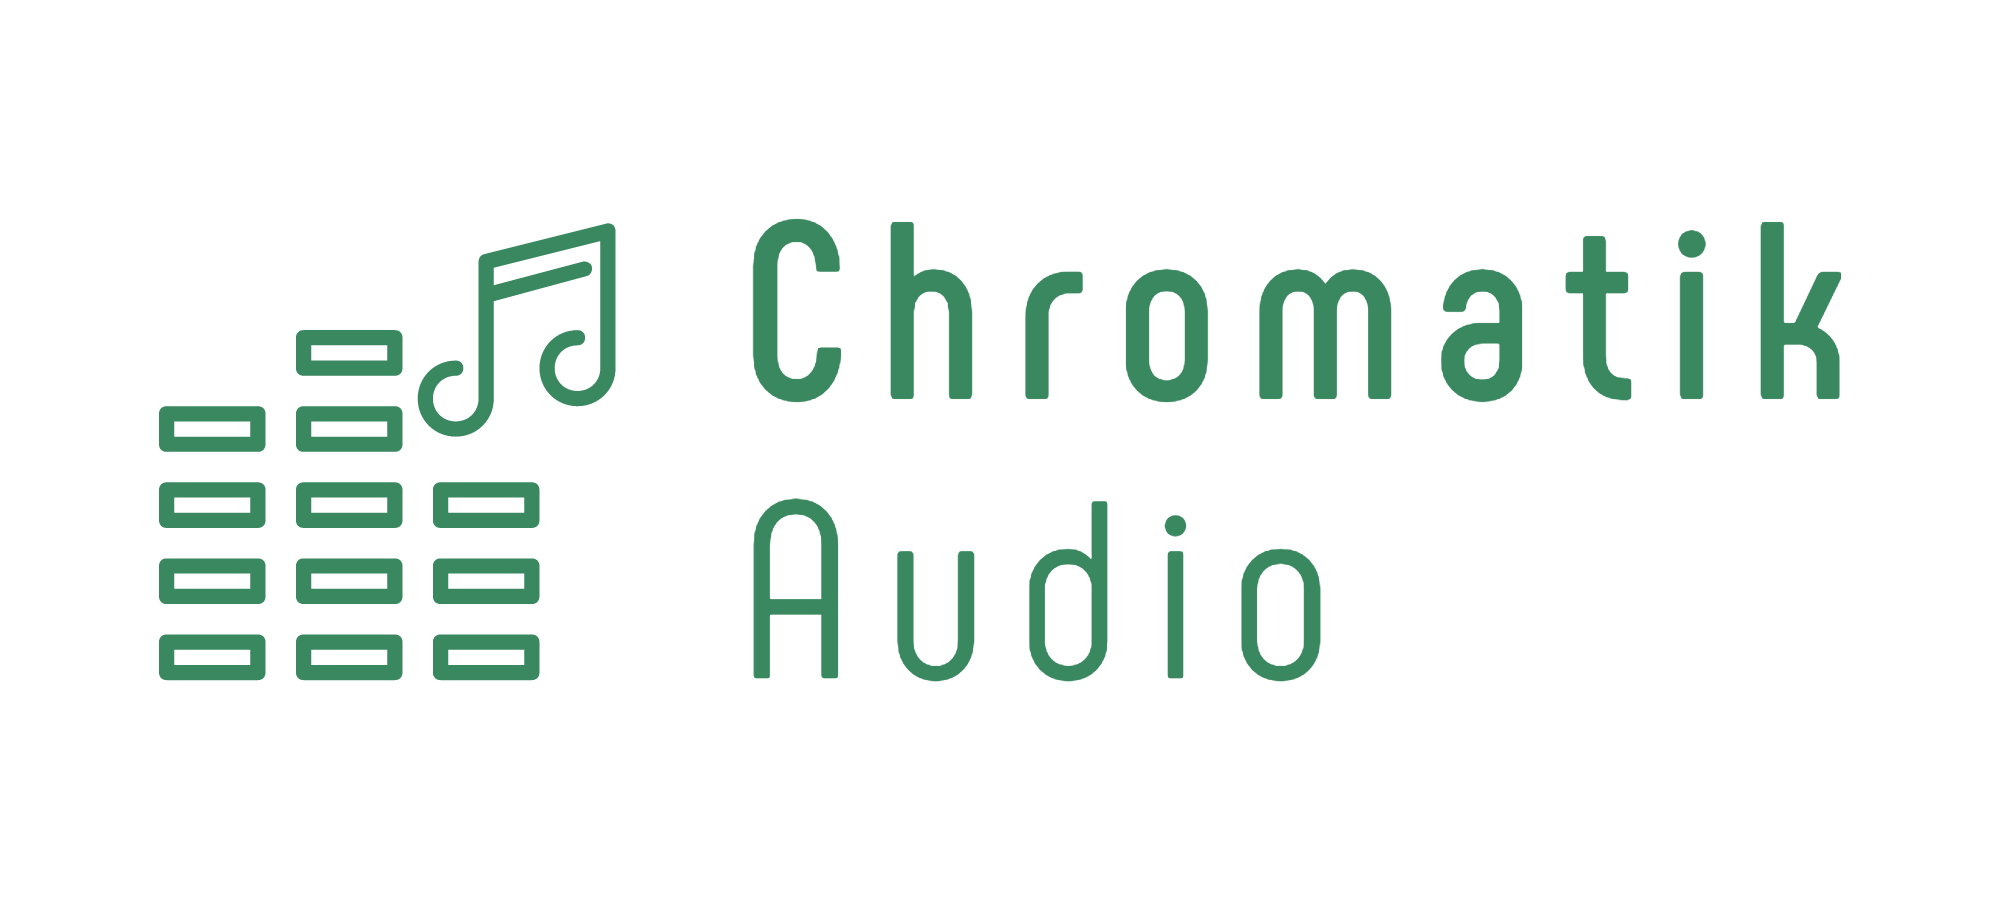 https://www.chromatikaudio.fr/wp-content/uploads/2019/06/horizontal_on_white_by_logaster.png